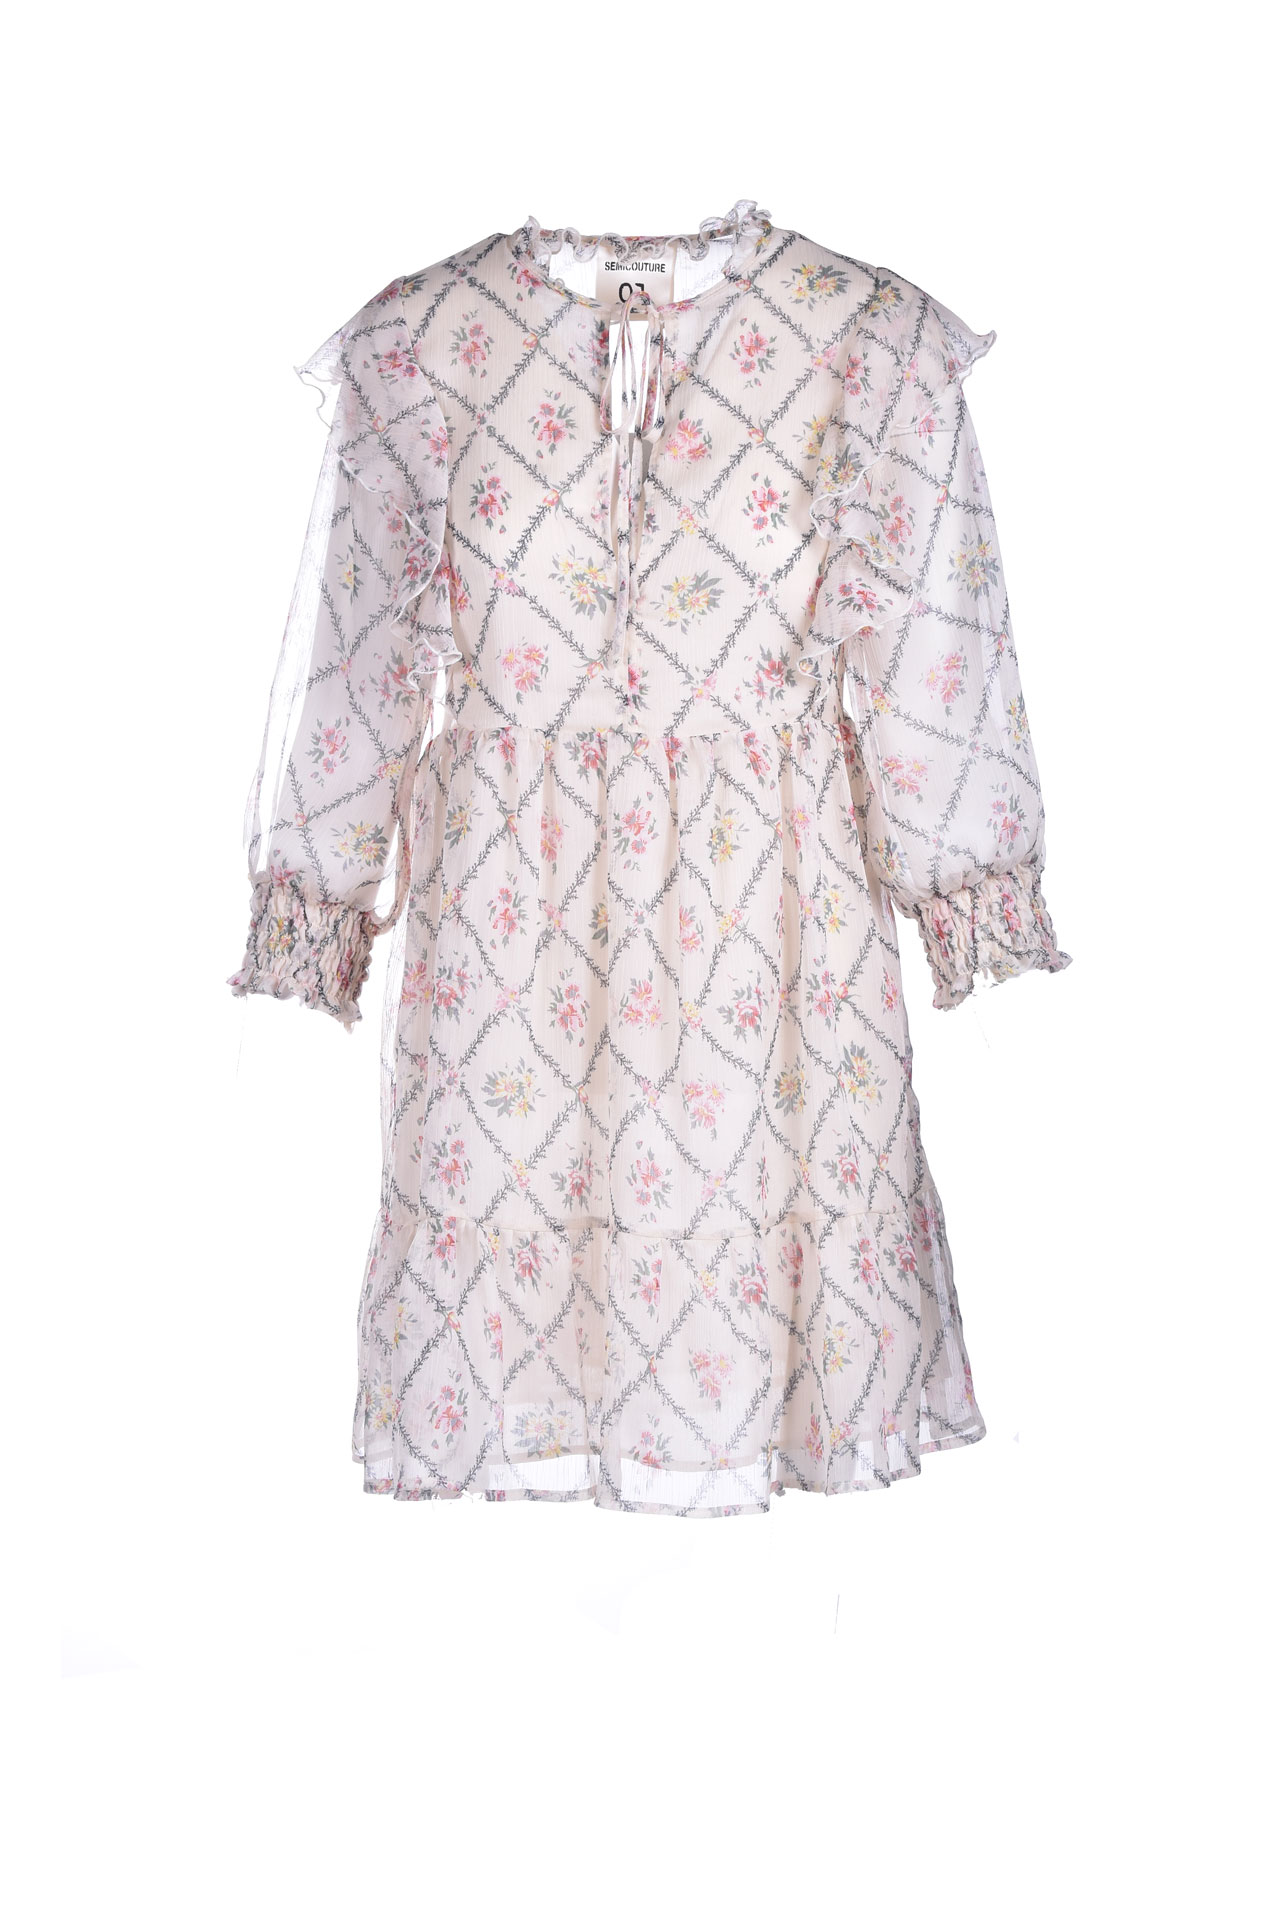 Voile crewneck dress with floral patterned rouches SEMICOUTURE | Dresses | Y1ST0325VAR